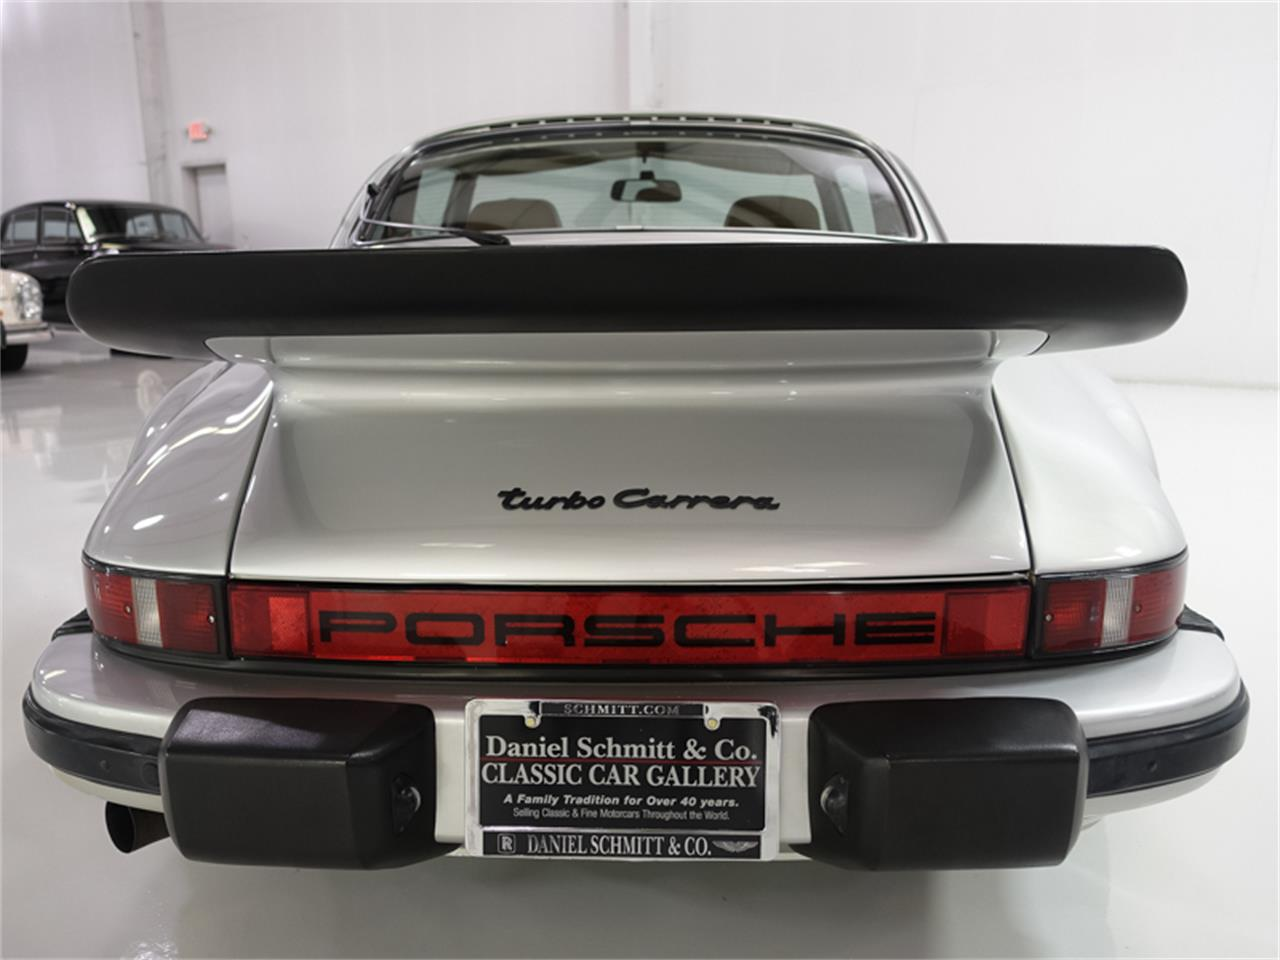 Large Picture of 1976 Porsche 930 Turbo located in St Ann Missouri - $229,900.00 - FXKC